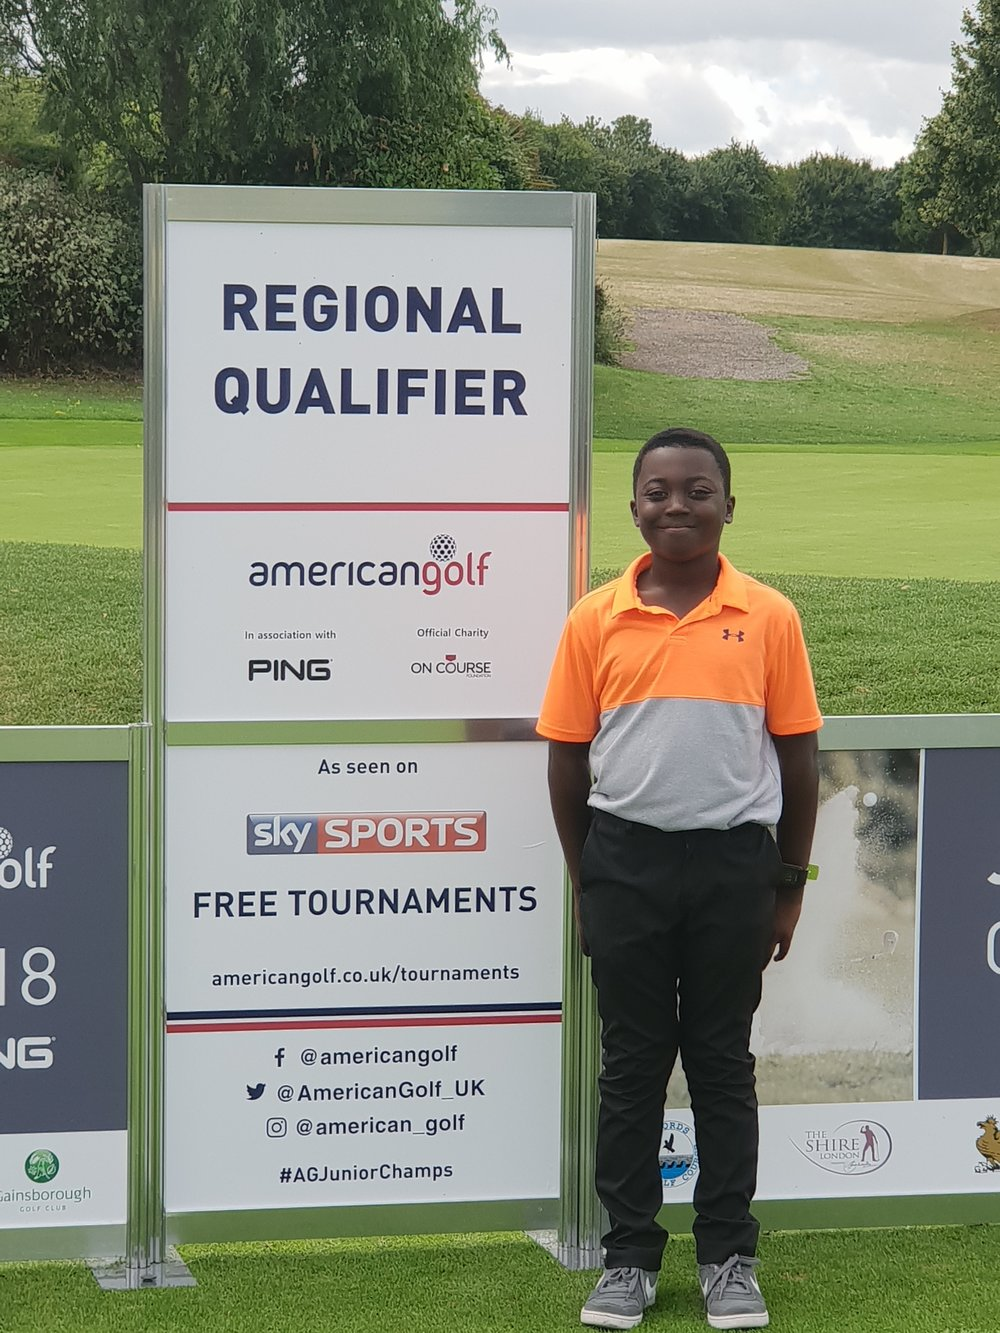 Copy of 2018 'Winner' Regional Qualifier 'Future Stars' 7-8 age group Junior Regional Championships American Golf - Gaudet Luce GC